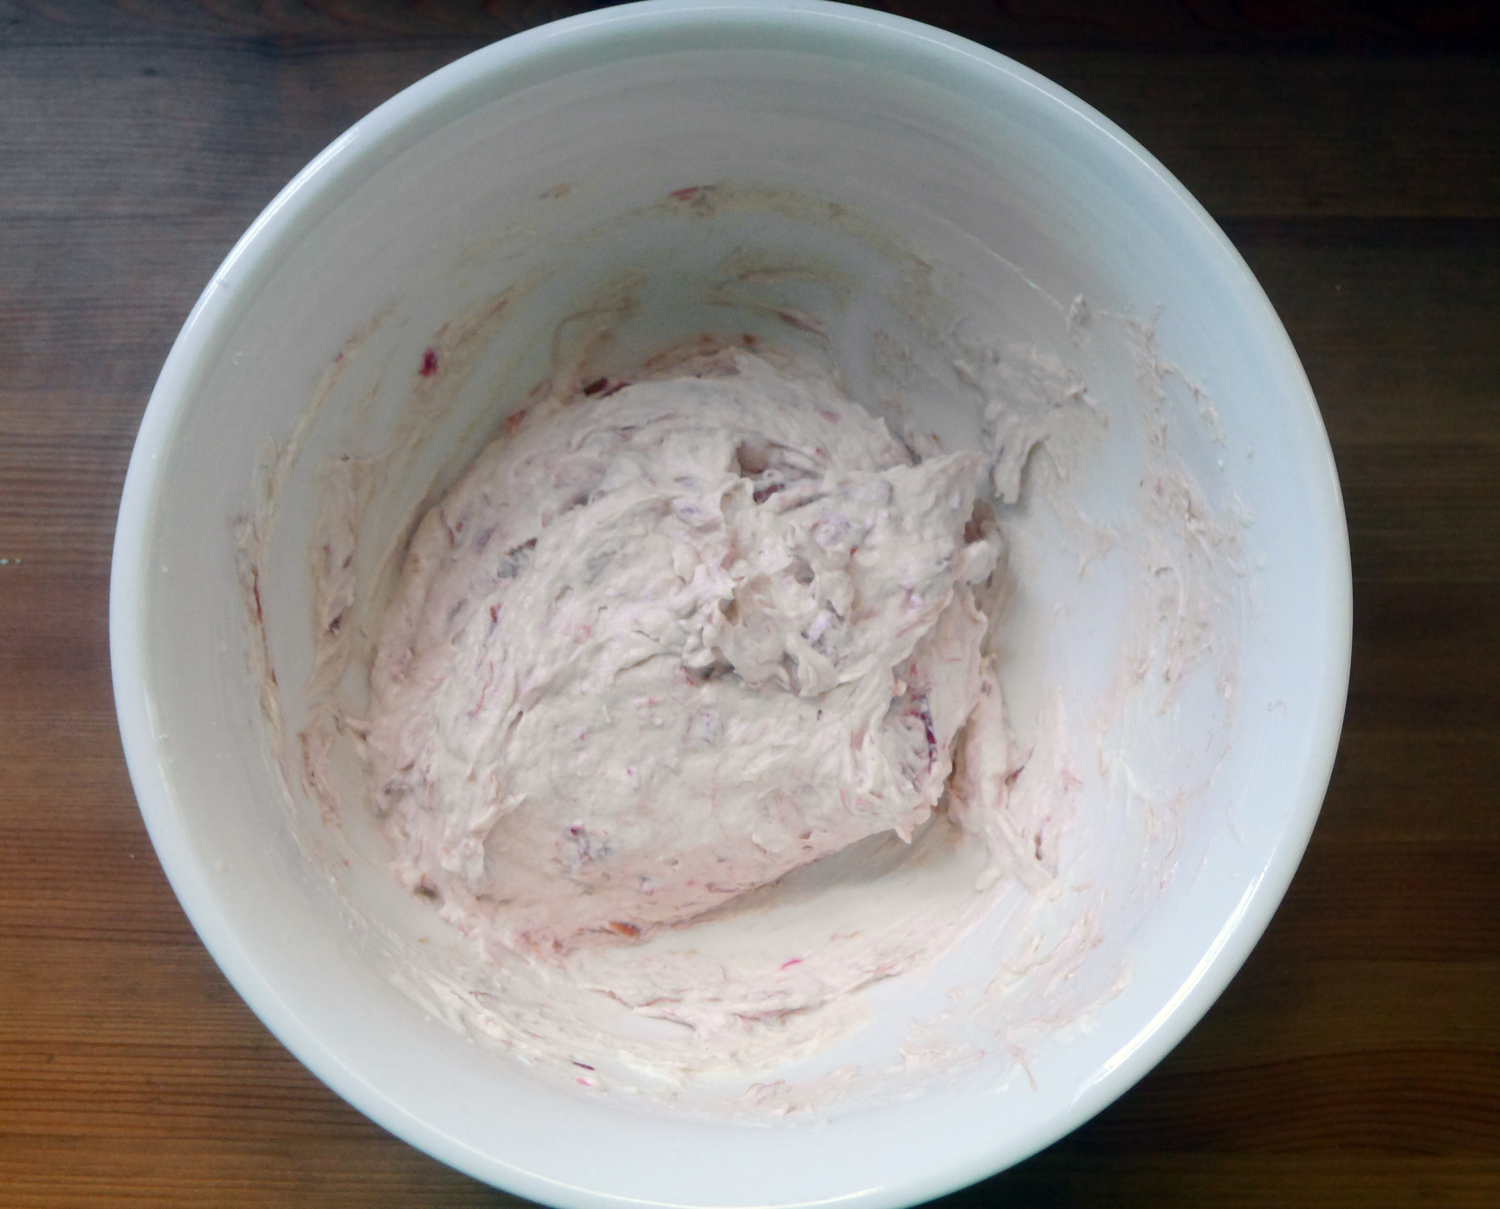 Rhubarb Mascarpone Whipped Cream